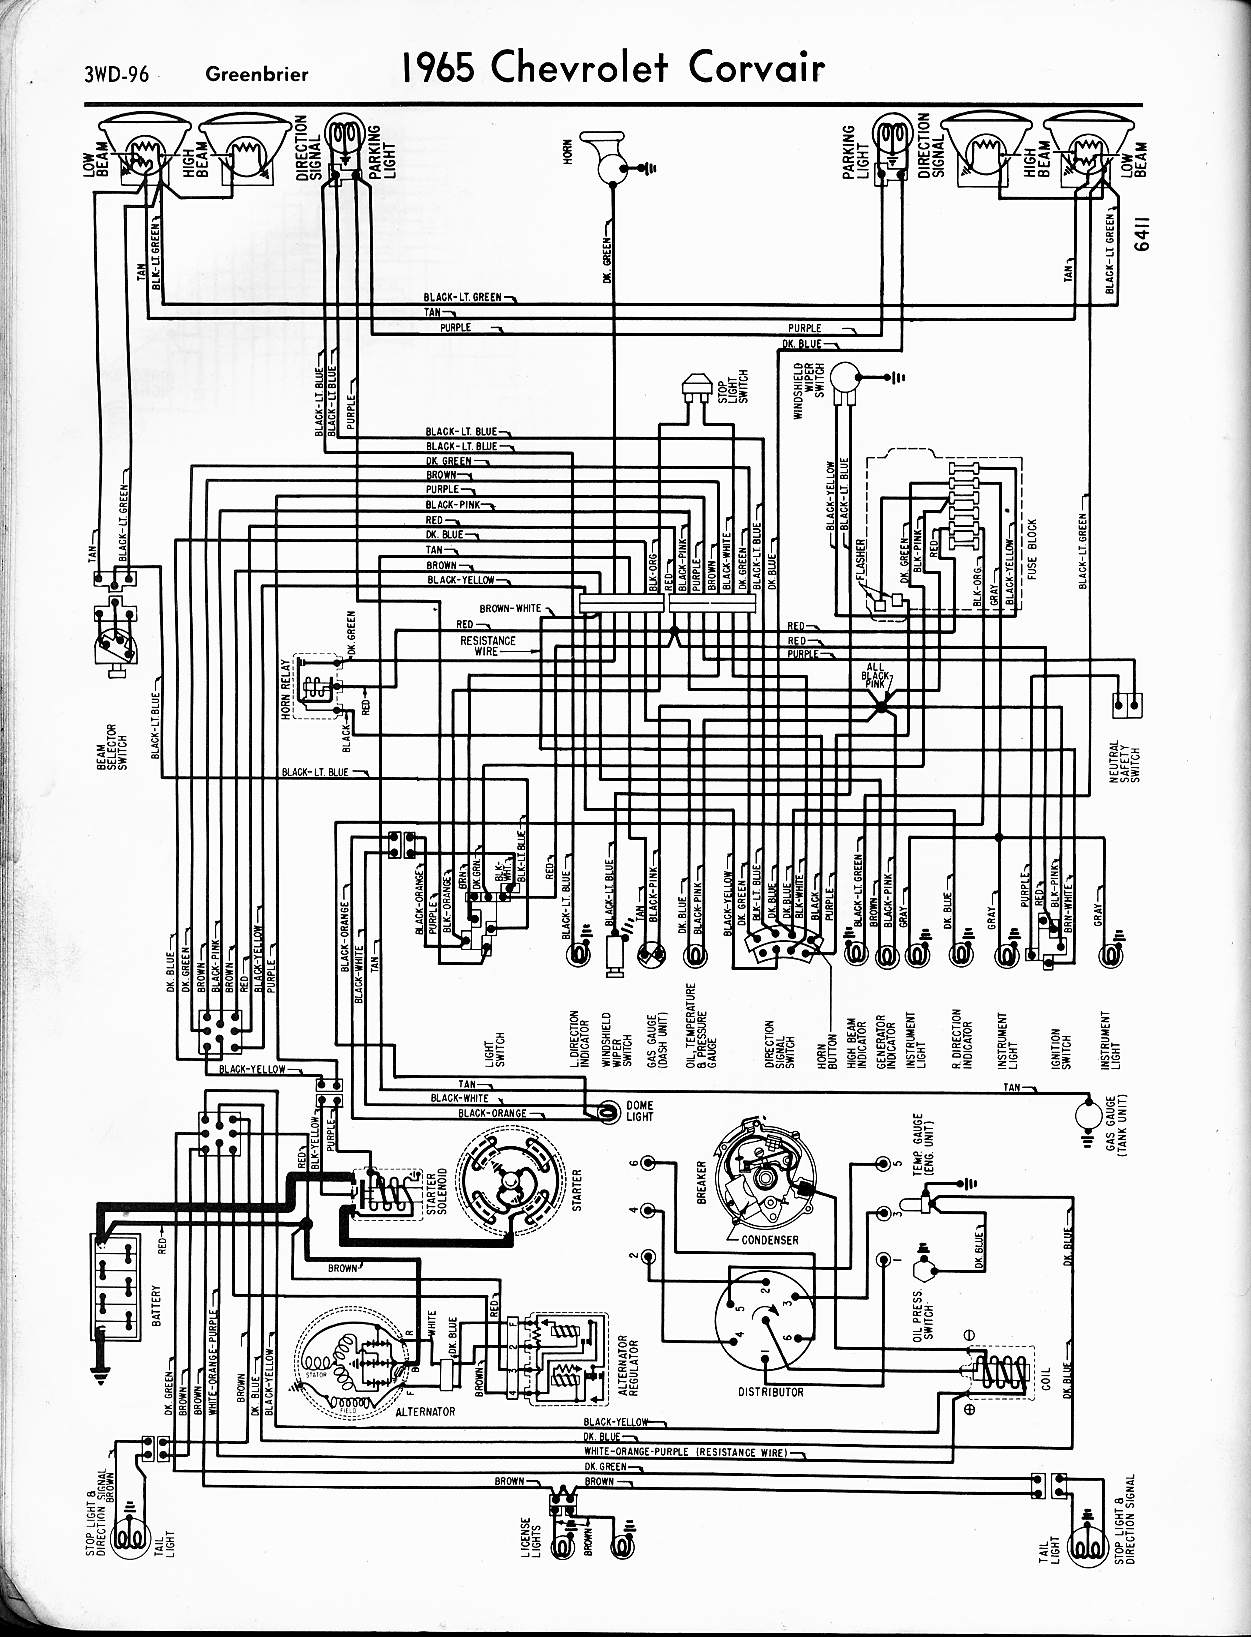 1964 Lincoln Continental Wiring Diagram Google : 46 Wiring